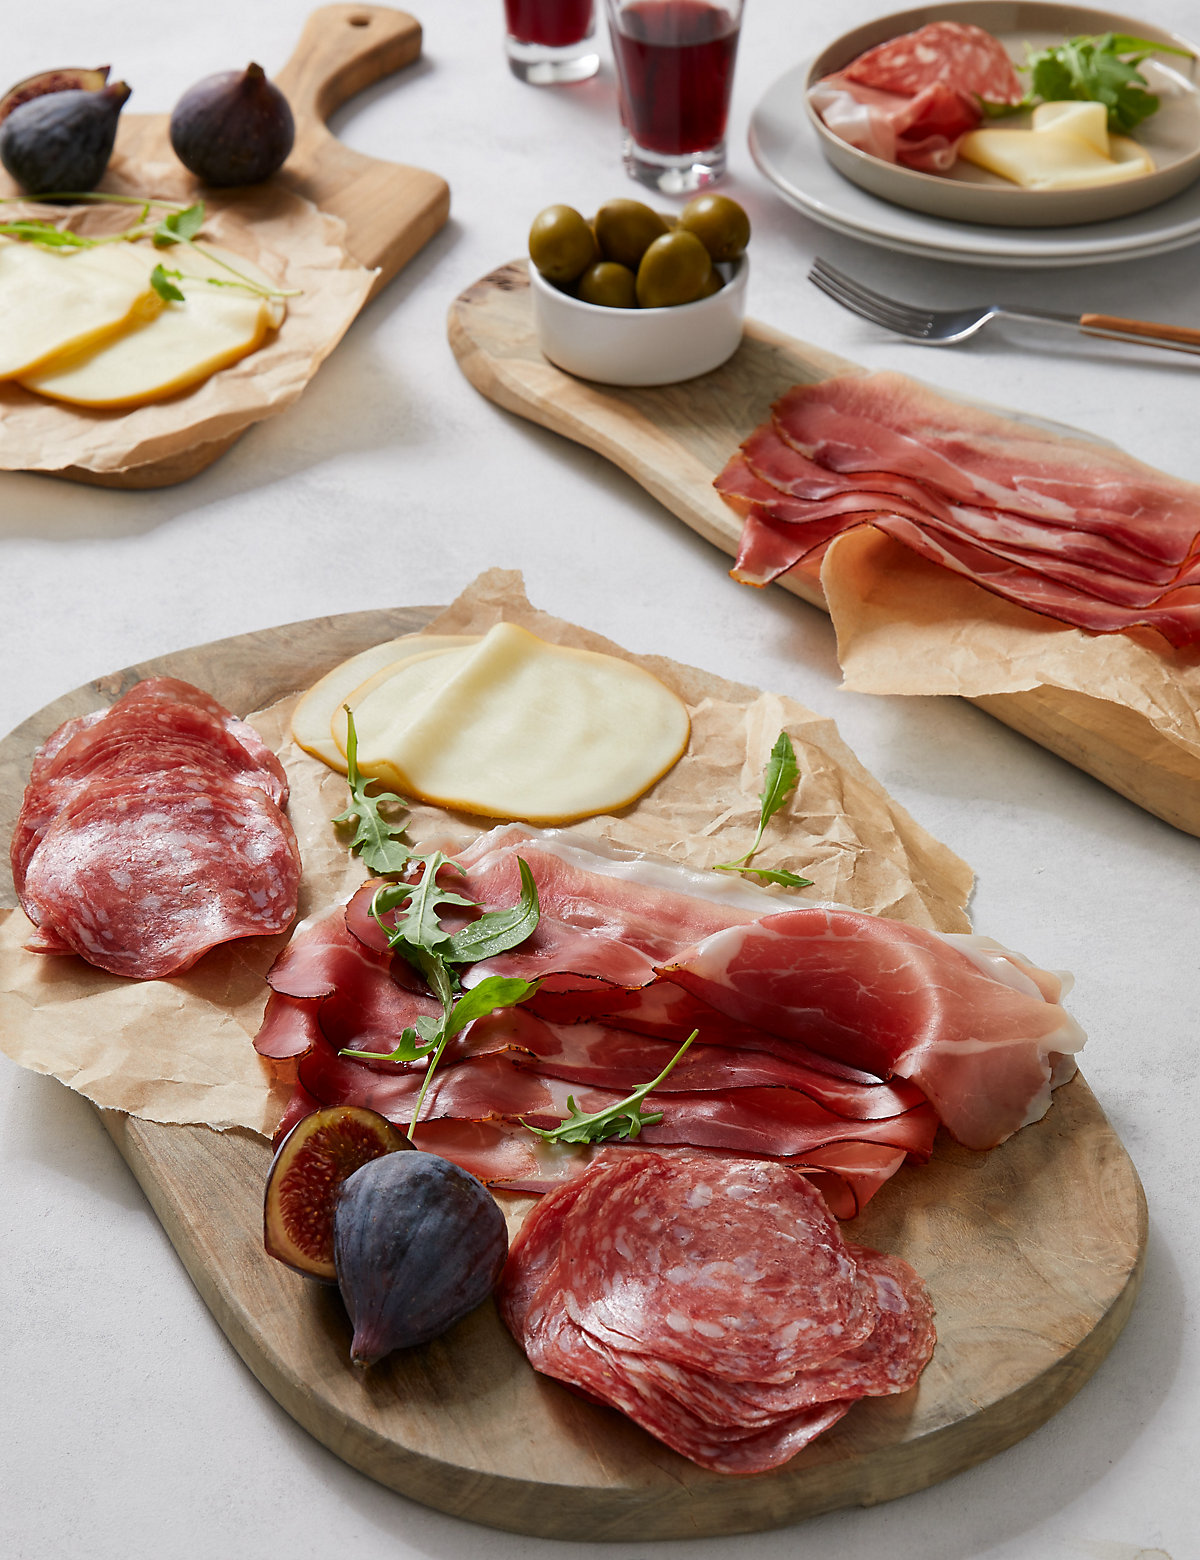 Traditional Italian Smoked Meats & Cheese Platter